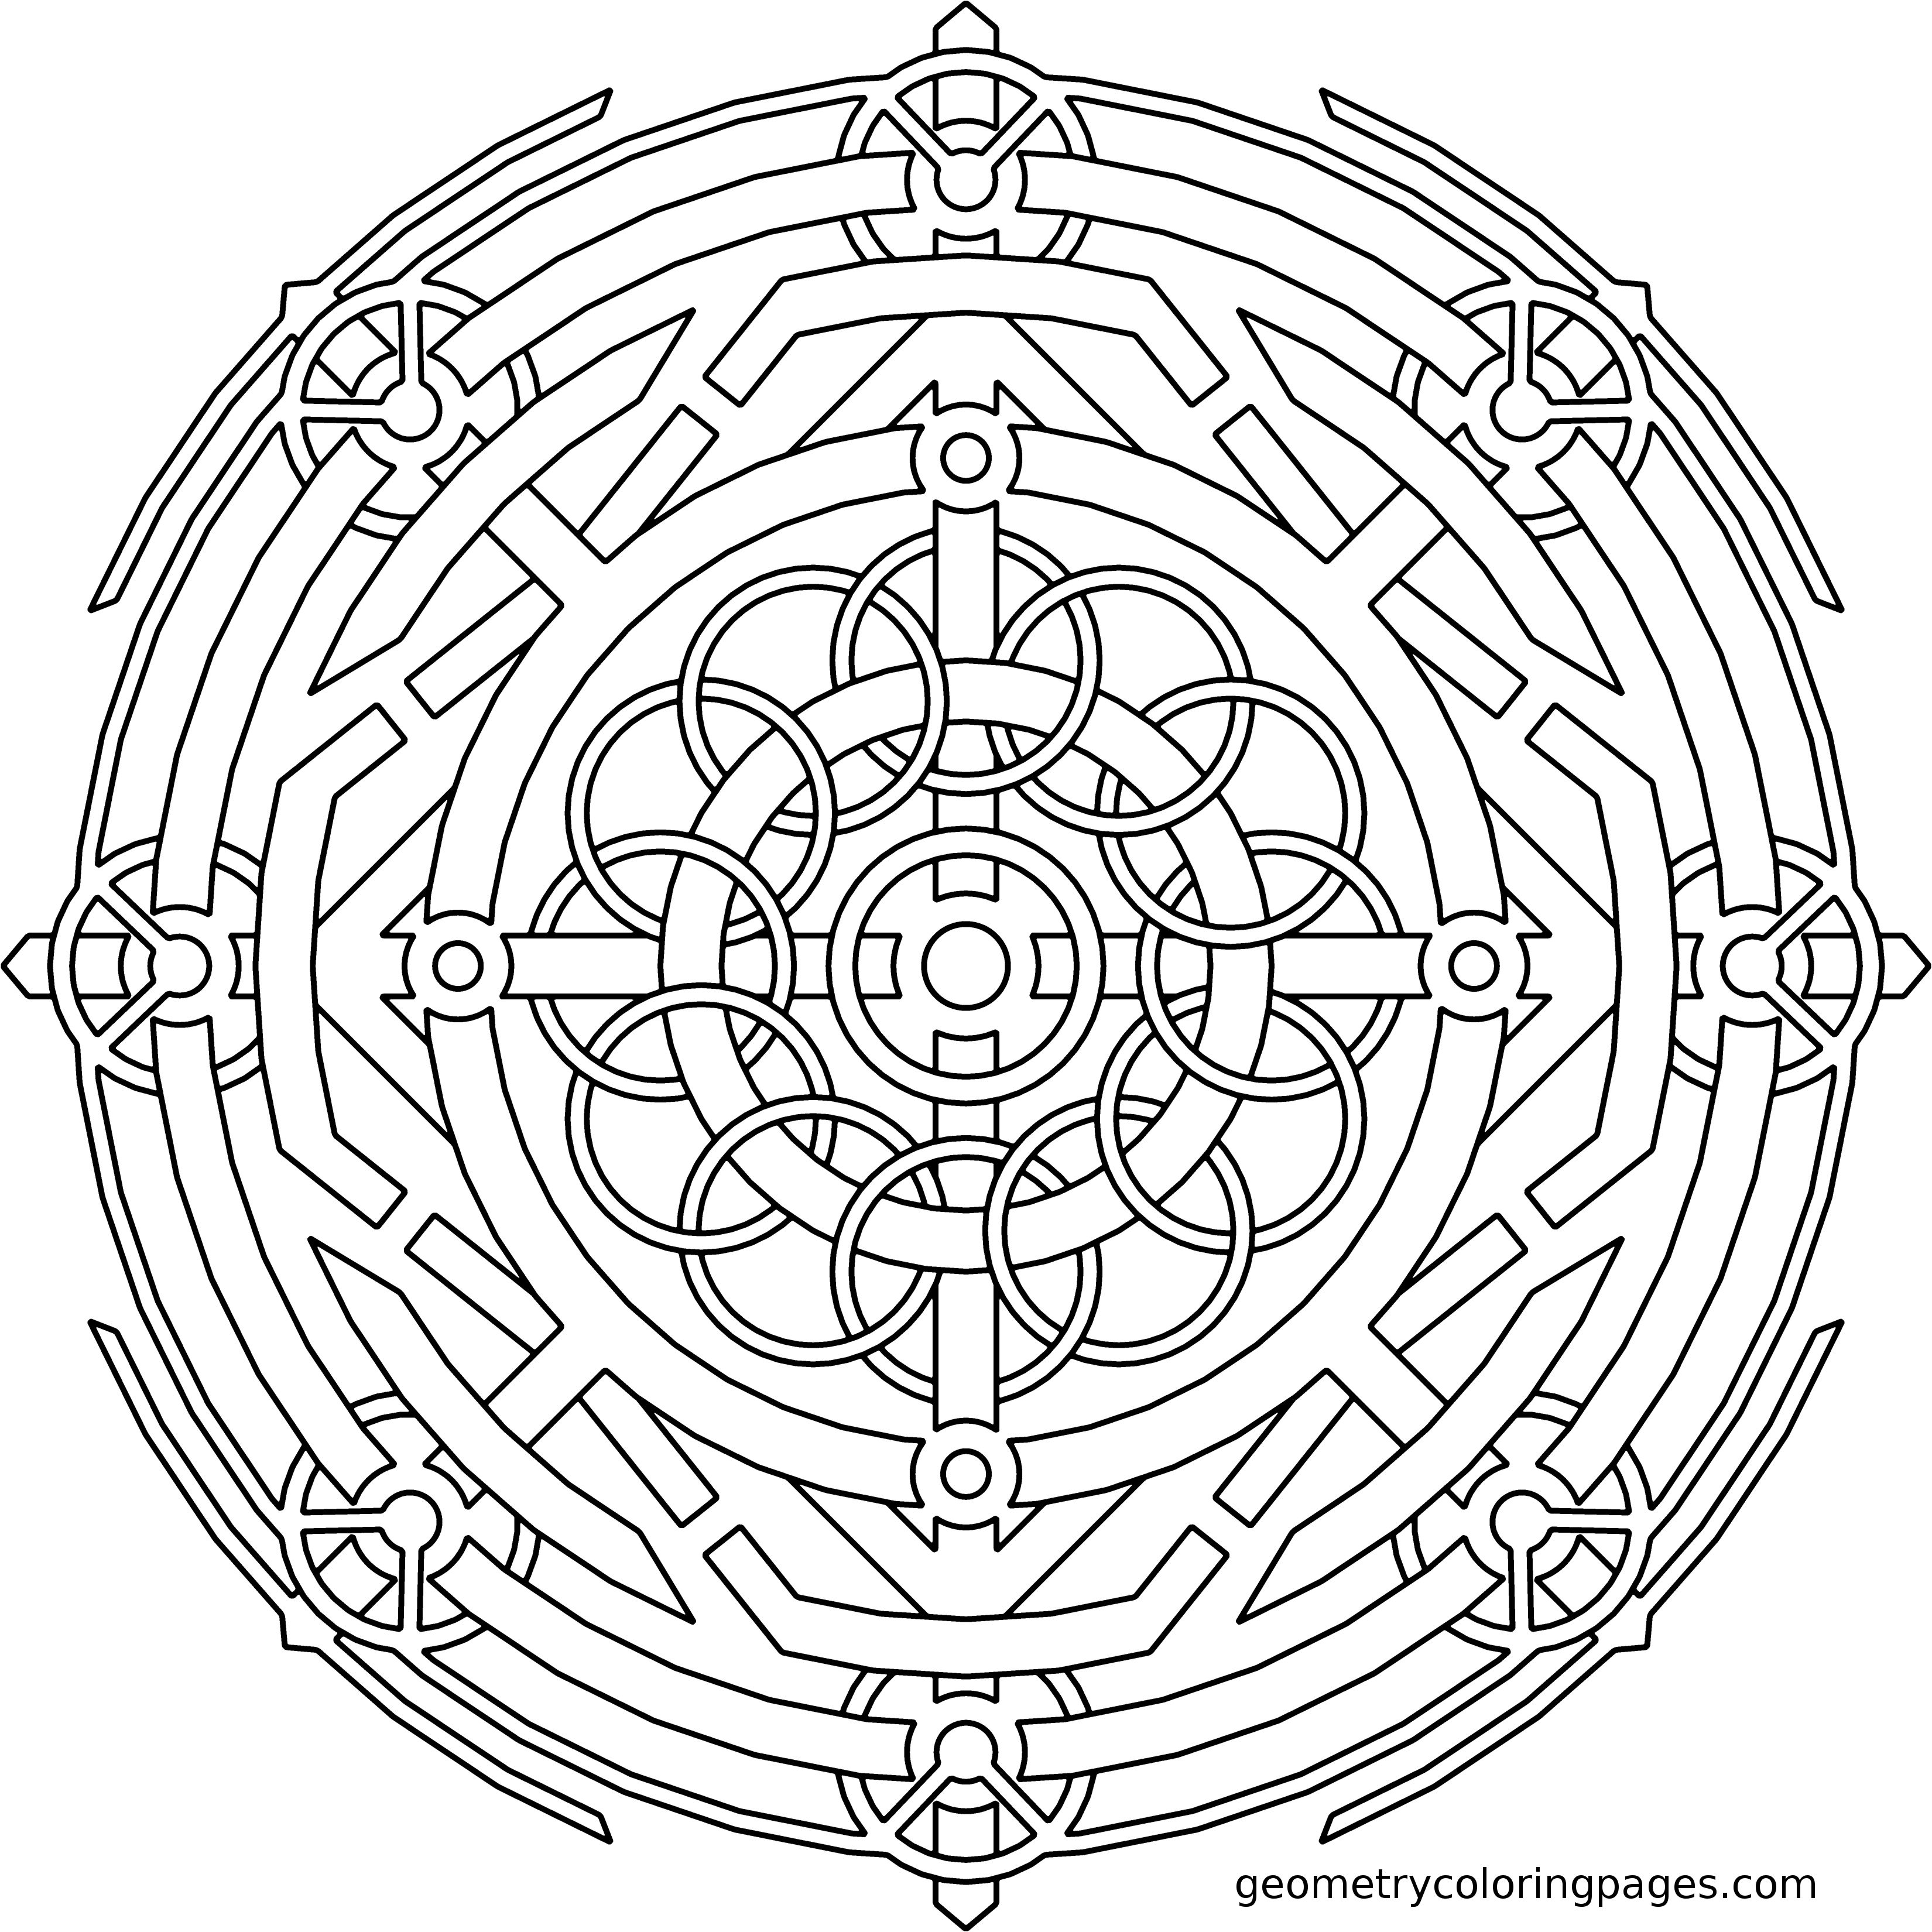 Mandala Coloring Page, Focus Device from